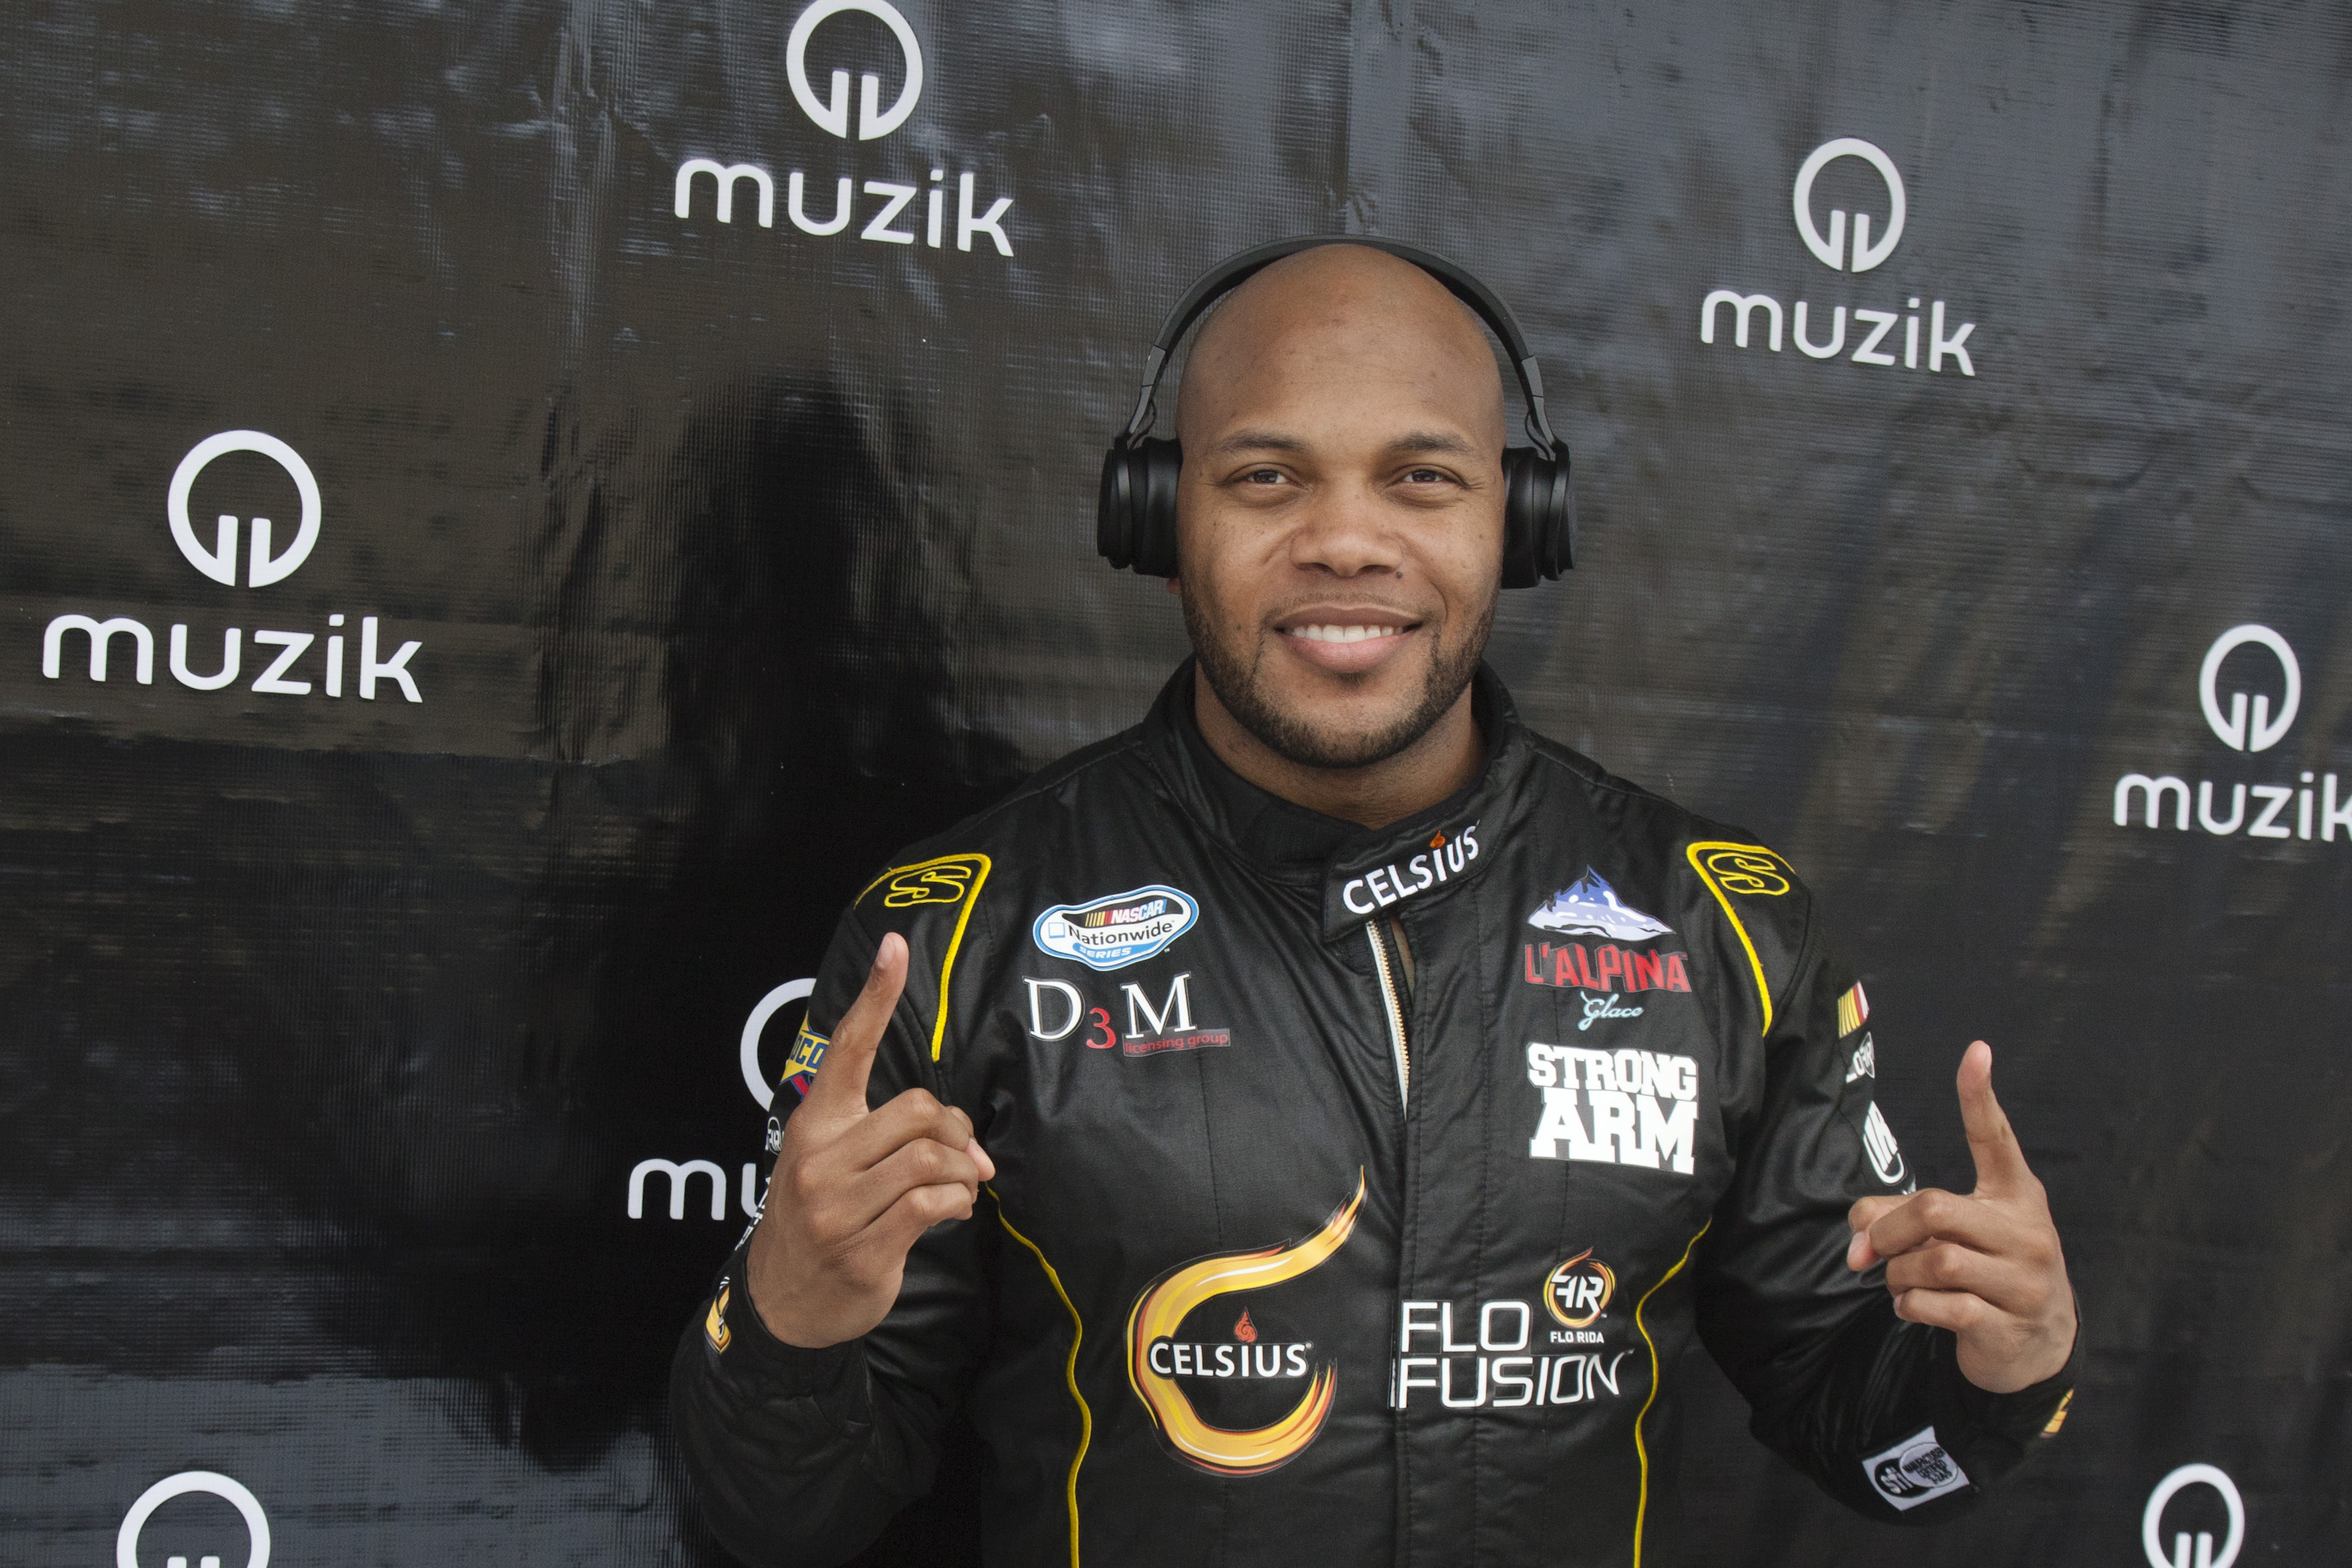 Flo Rida with Muzik Headphones 1